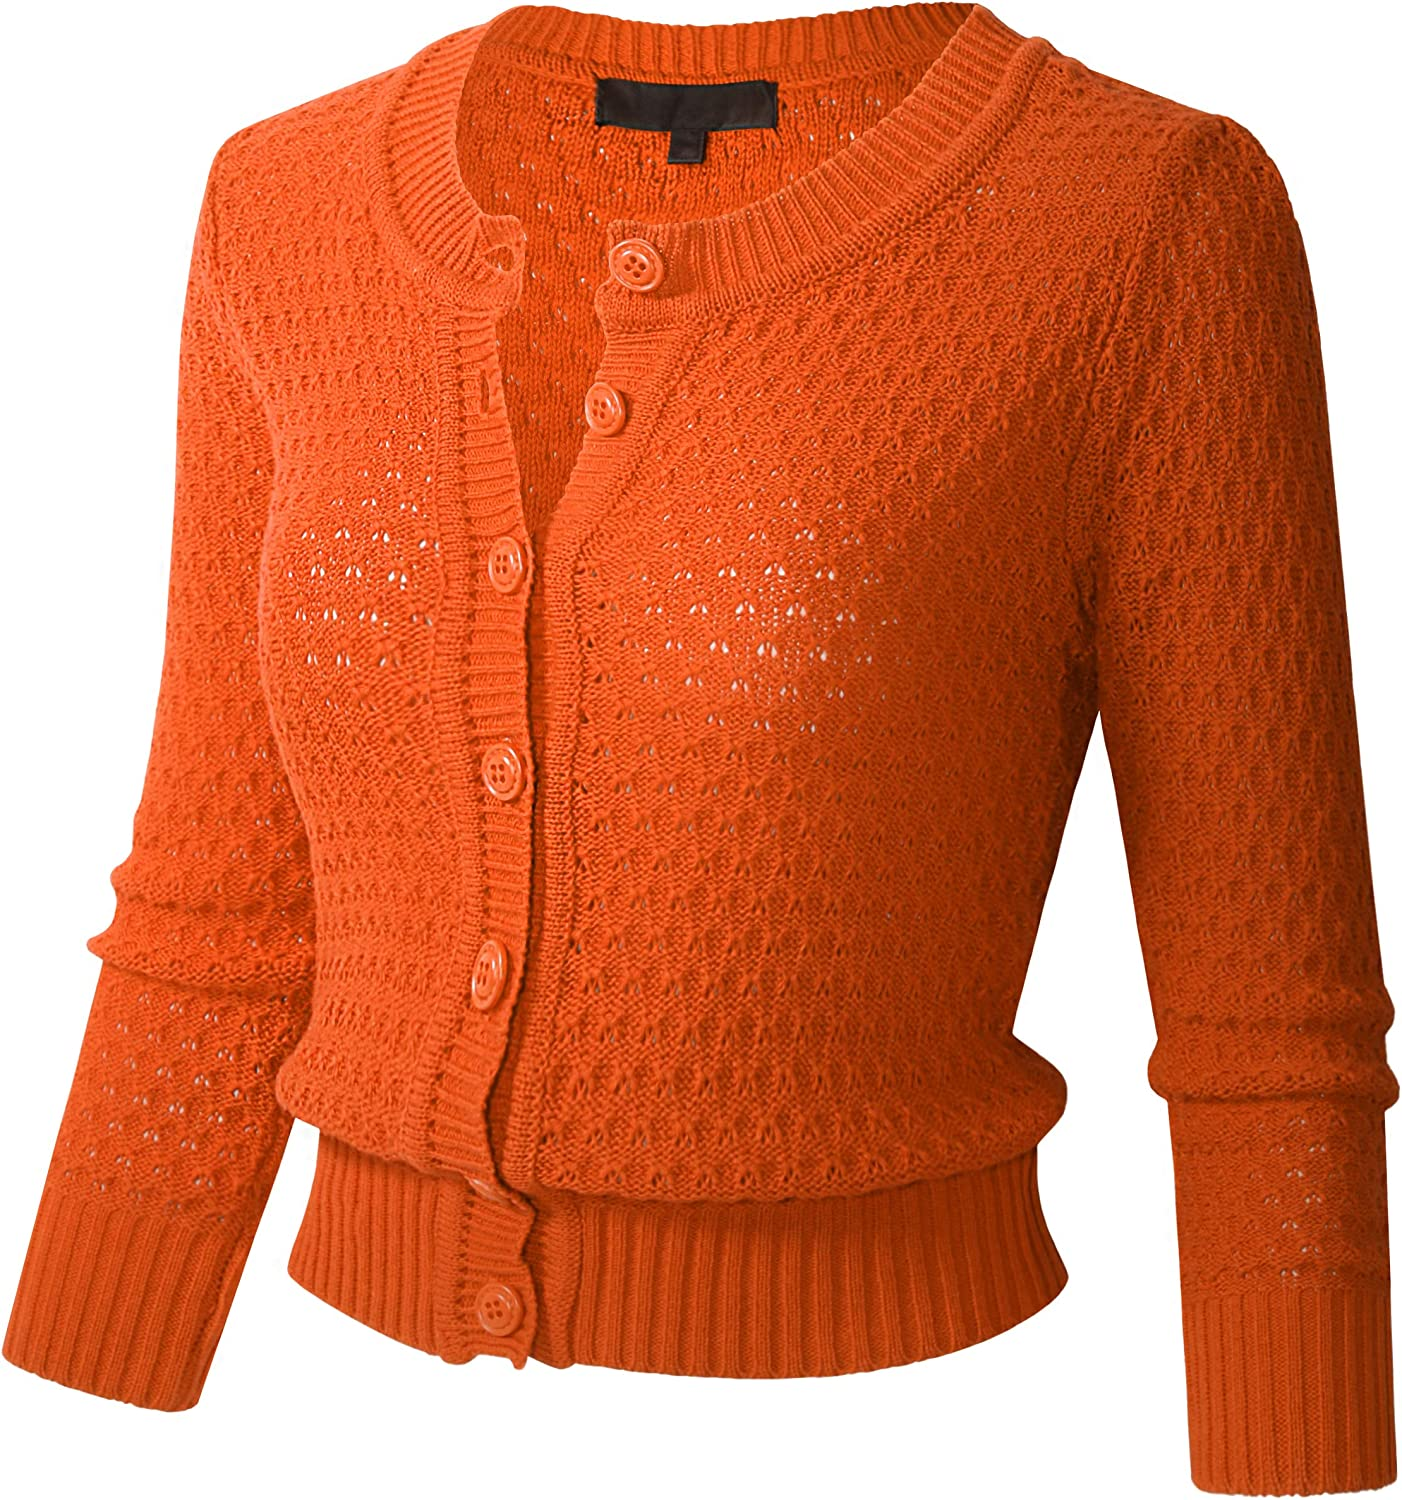 Womens Button Down 3/4 Sleeve Cropped Knit Cardigan Crochet Sweater (S-3XL)